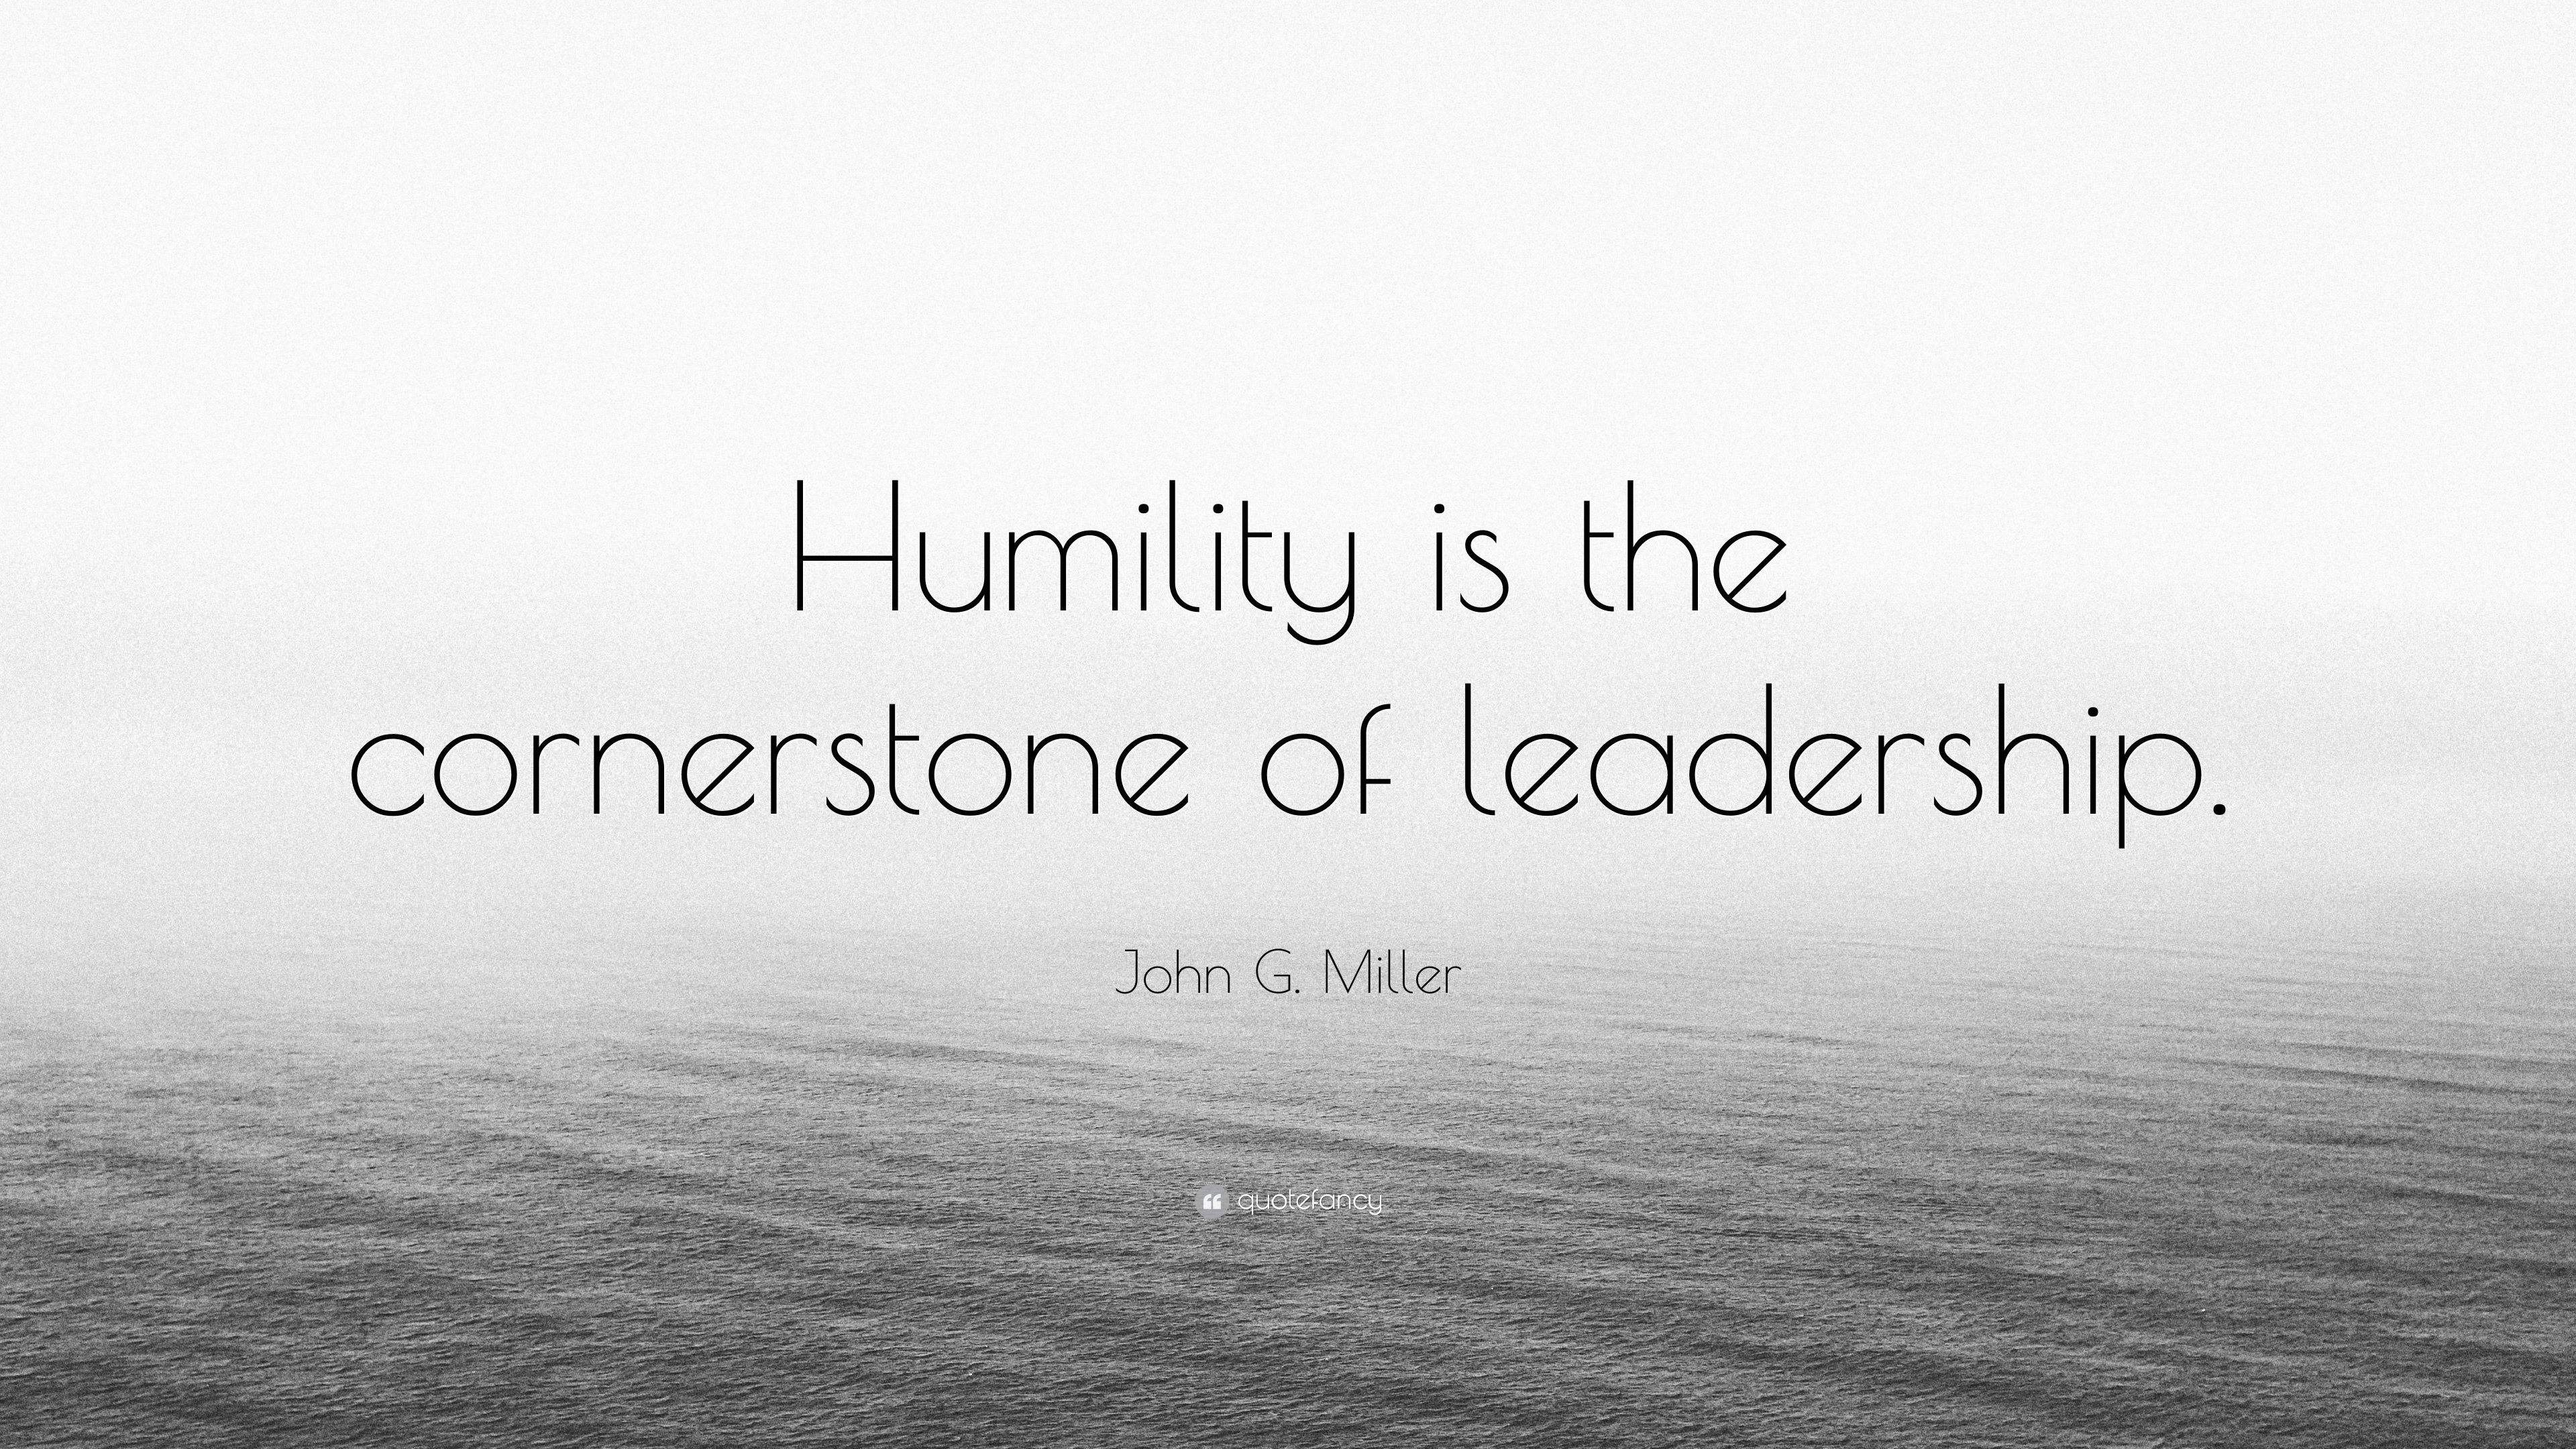 John G Miller Quote Humility Is The Cornerstone Of Leadership 7 Wallpapers Quotefancy